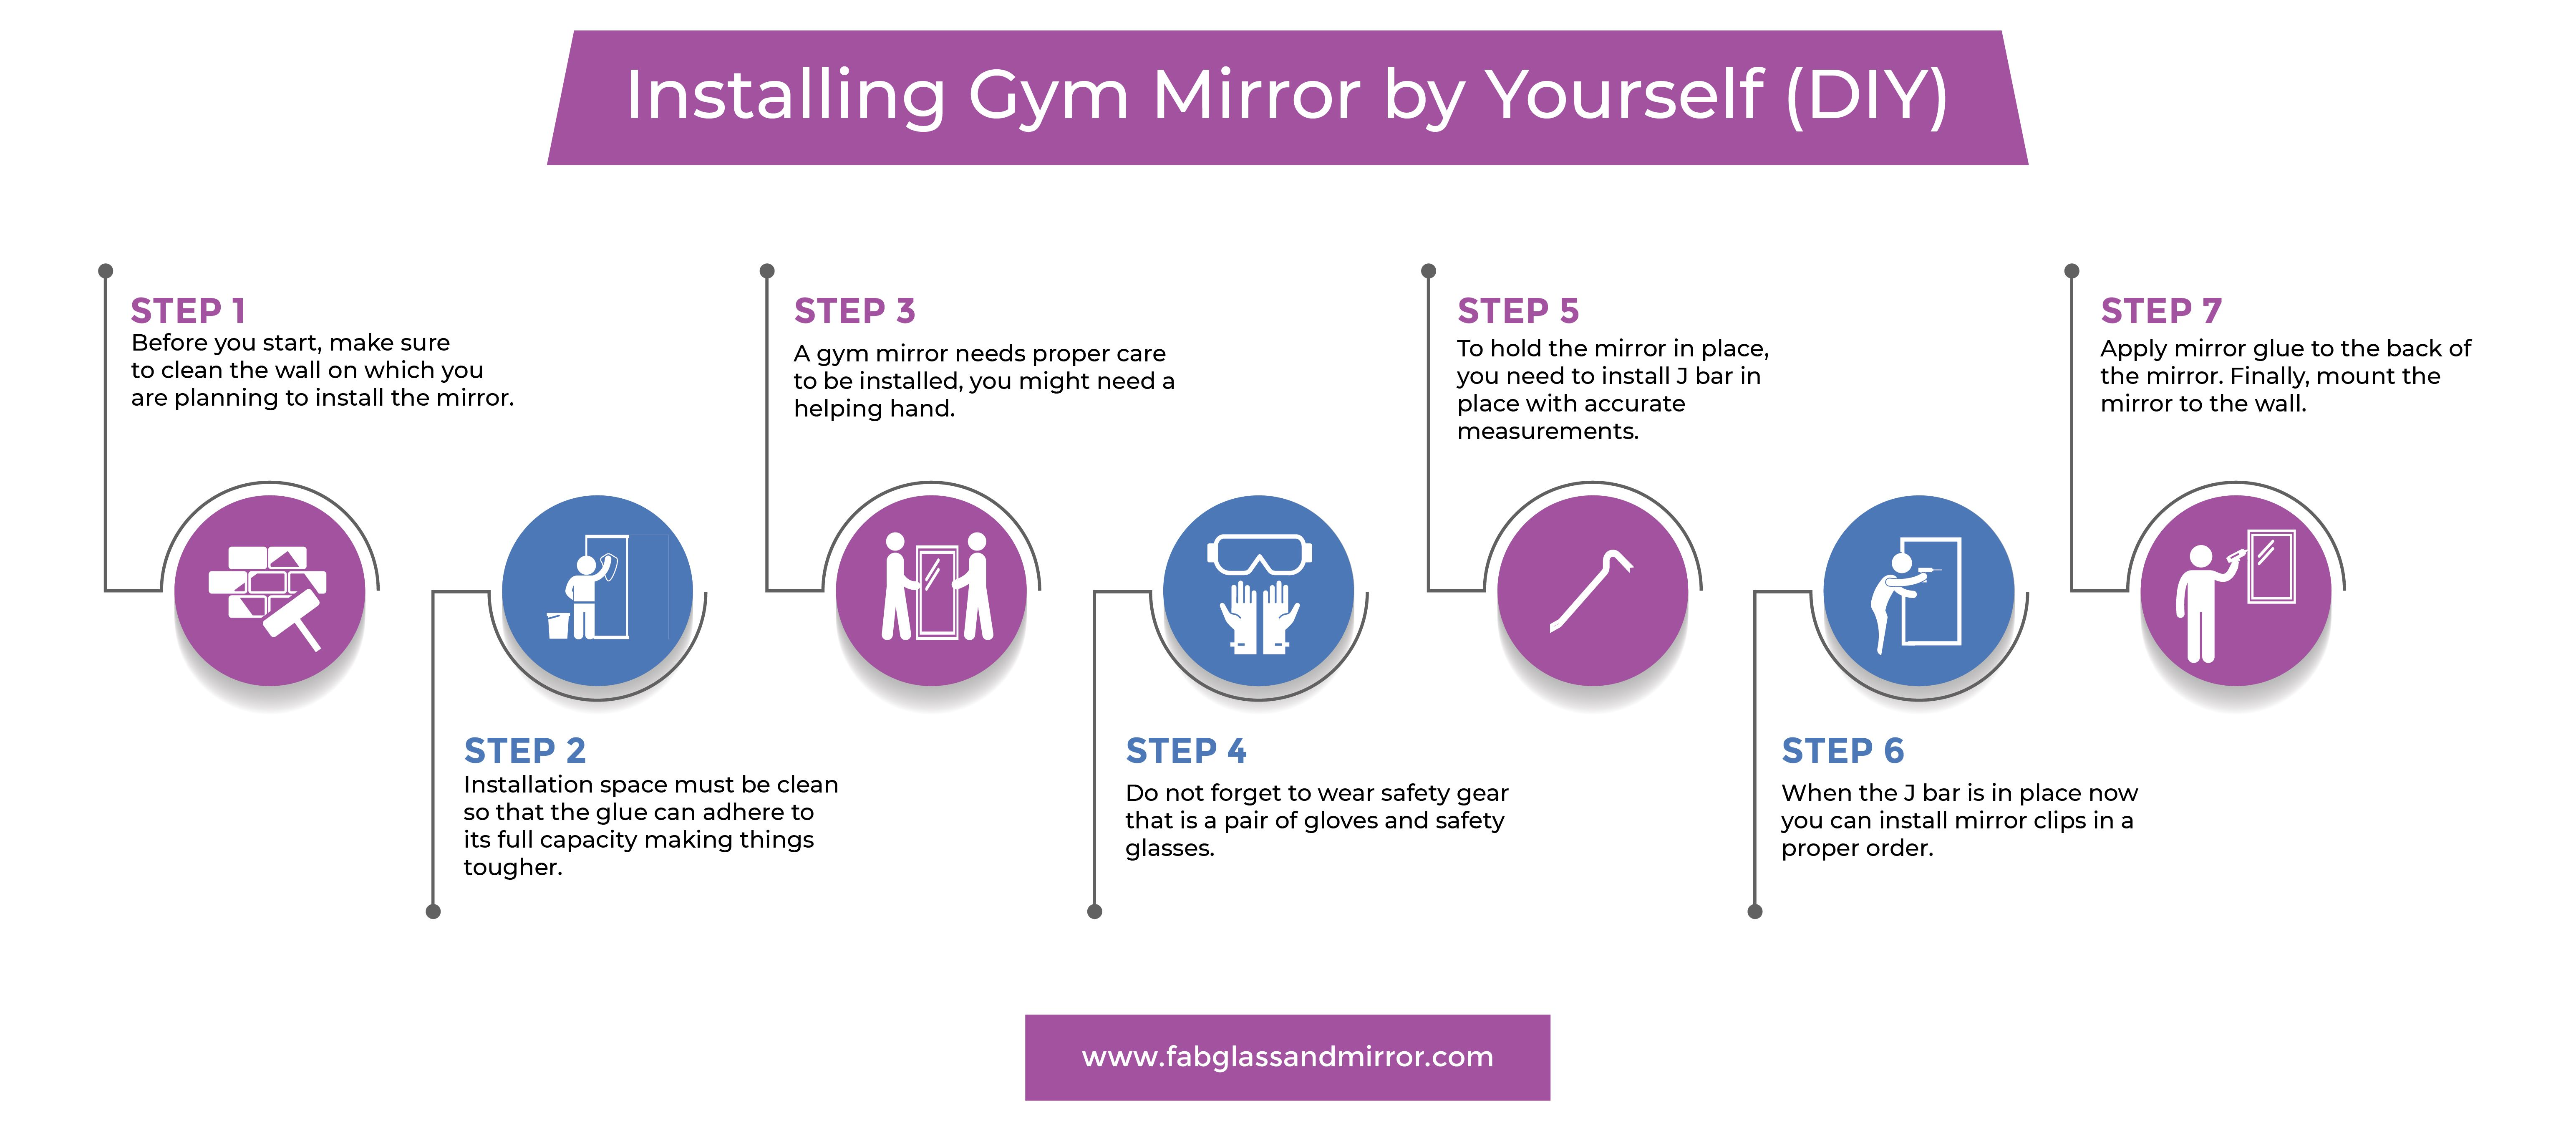 Installing A Gym Mirror By Yourself Diy In 2020 Gym Mirrors Dance Mirrors Mirror Kit